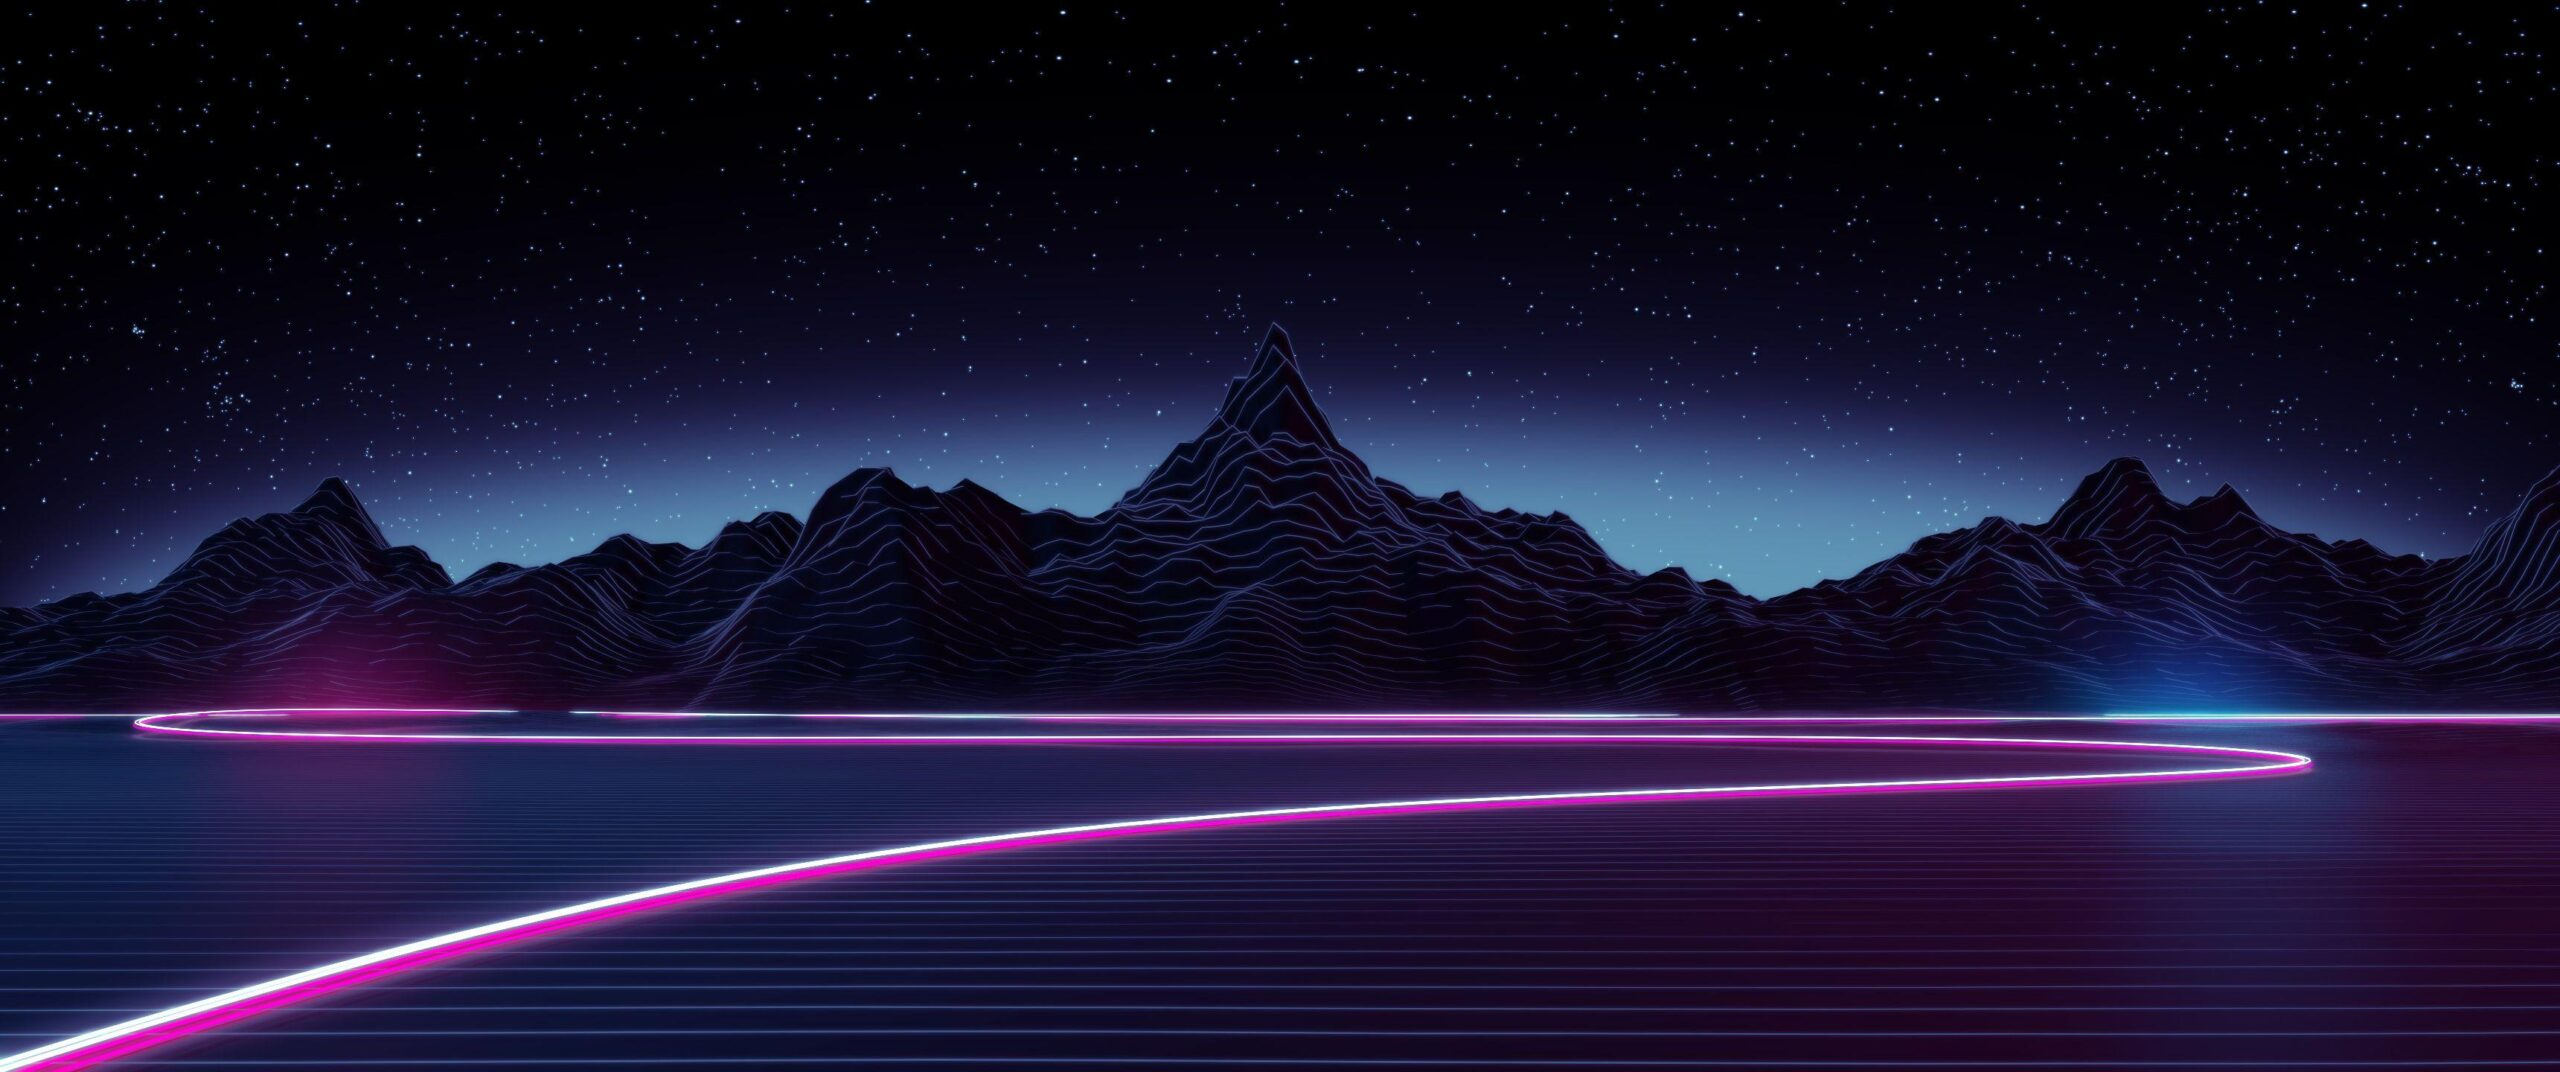 synthwave wallpaper iphone